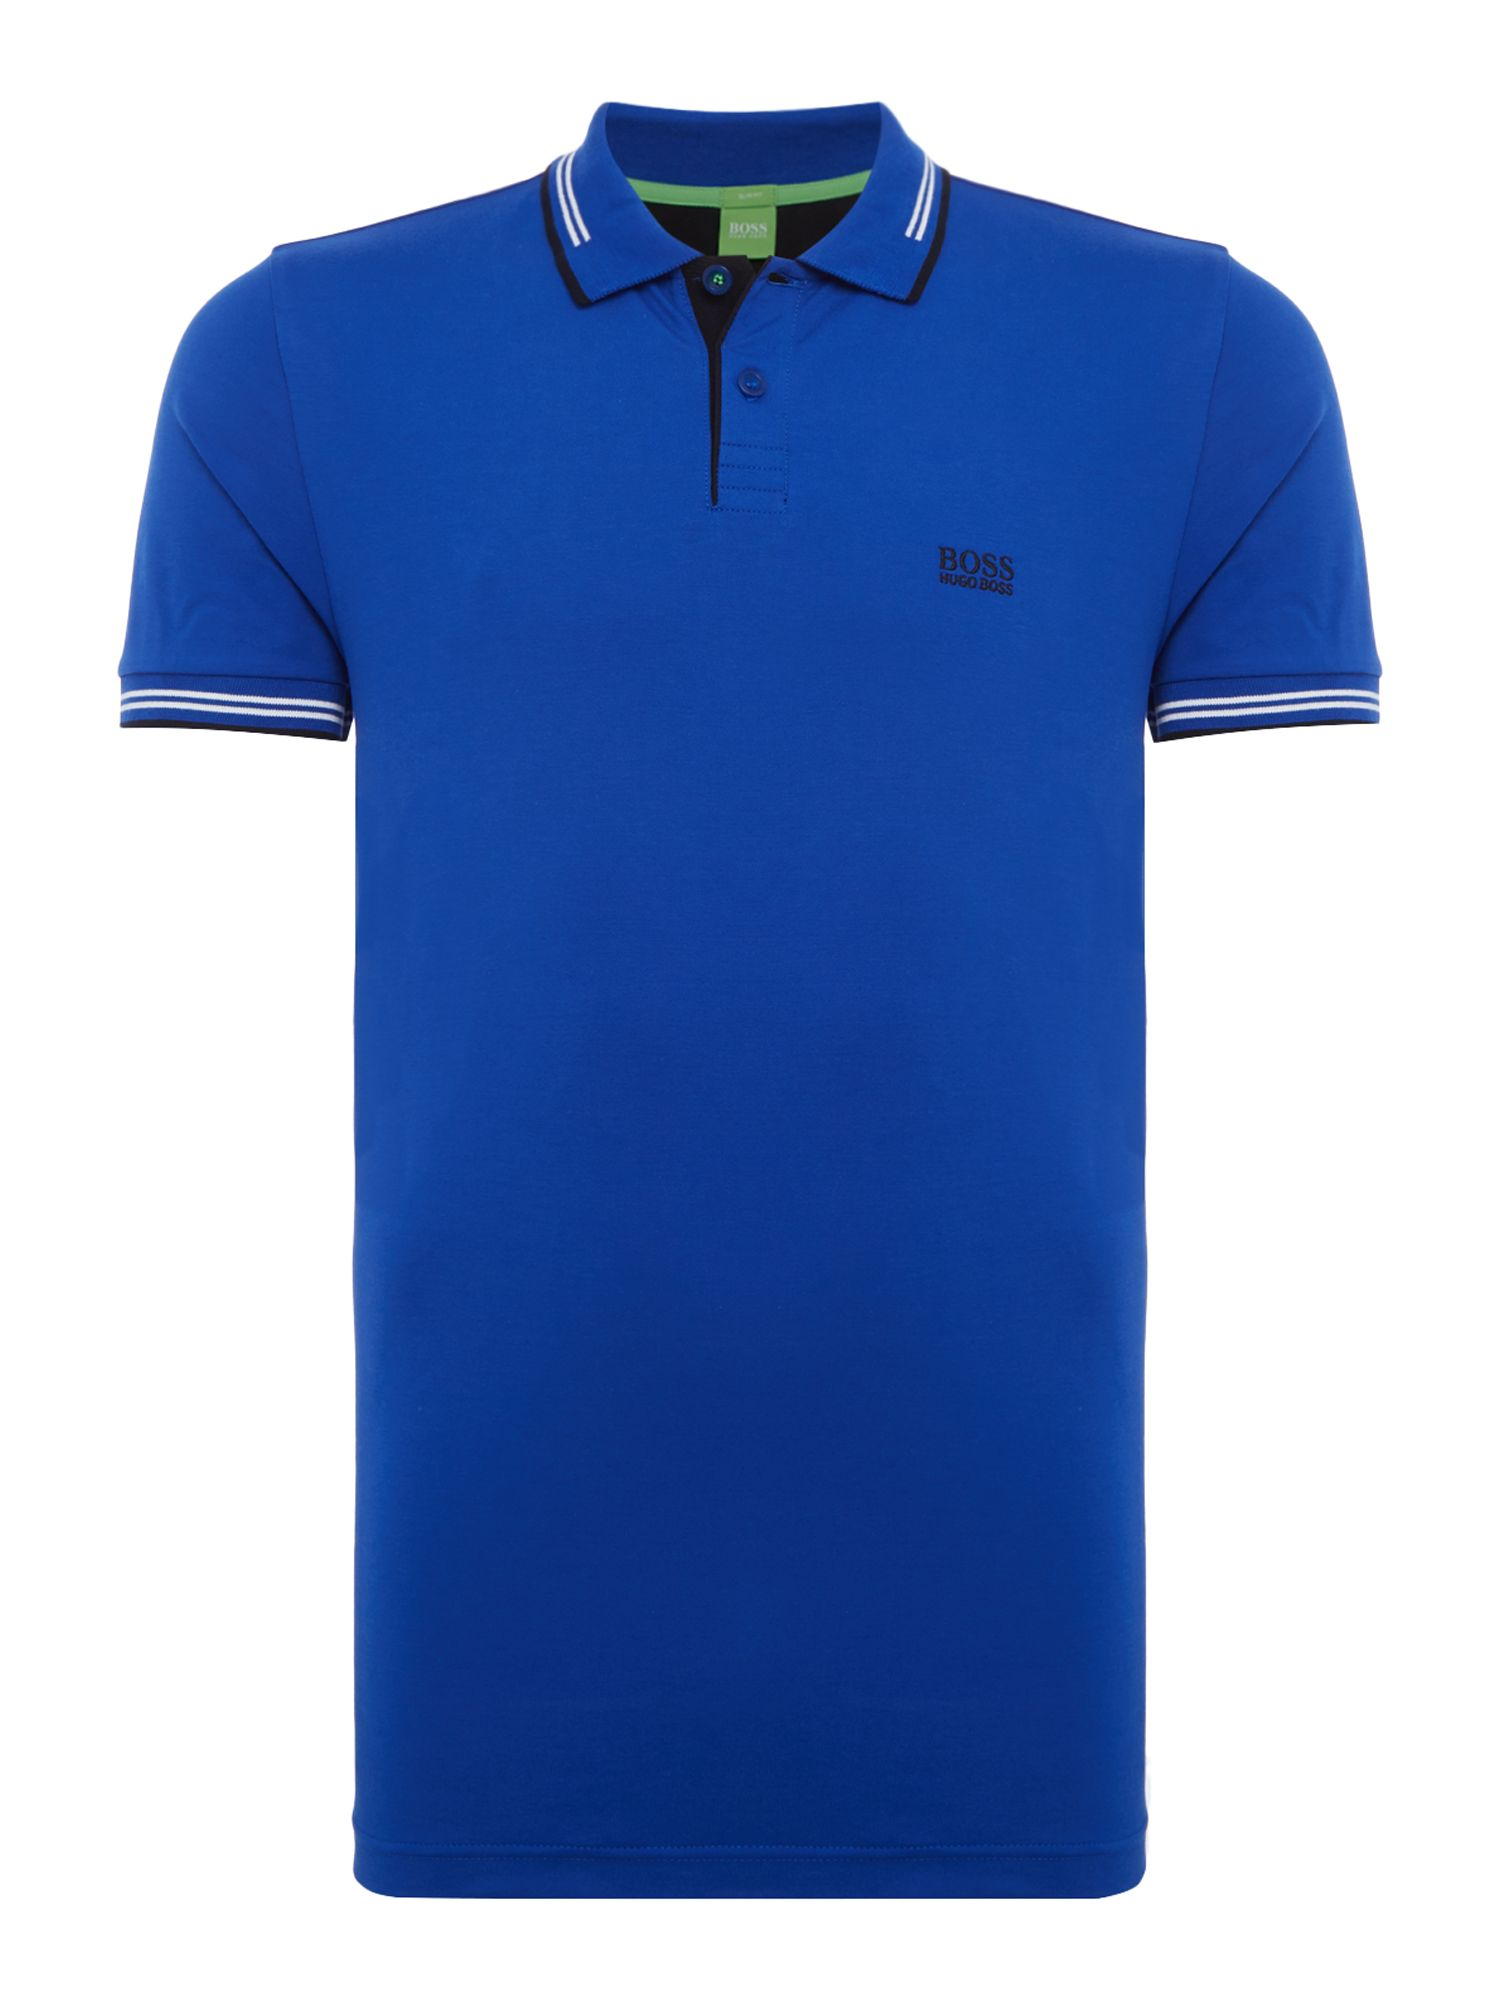 Men's Hugo Boss Paul Short Sleeve Slim Fit Polo Shirt, Blue